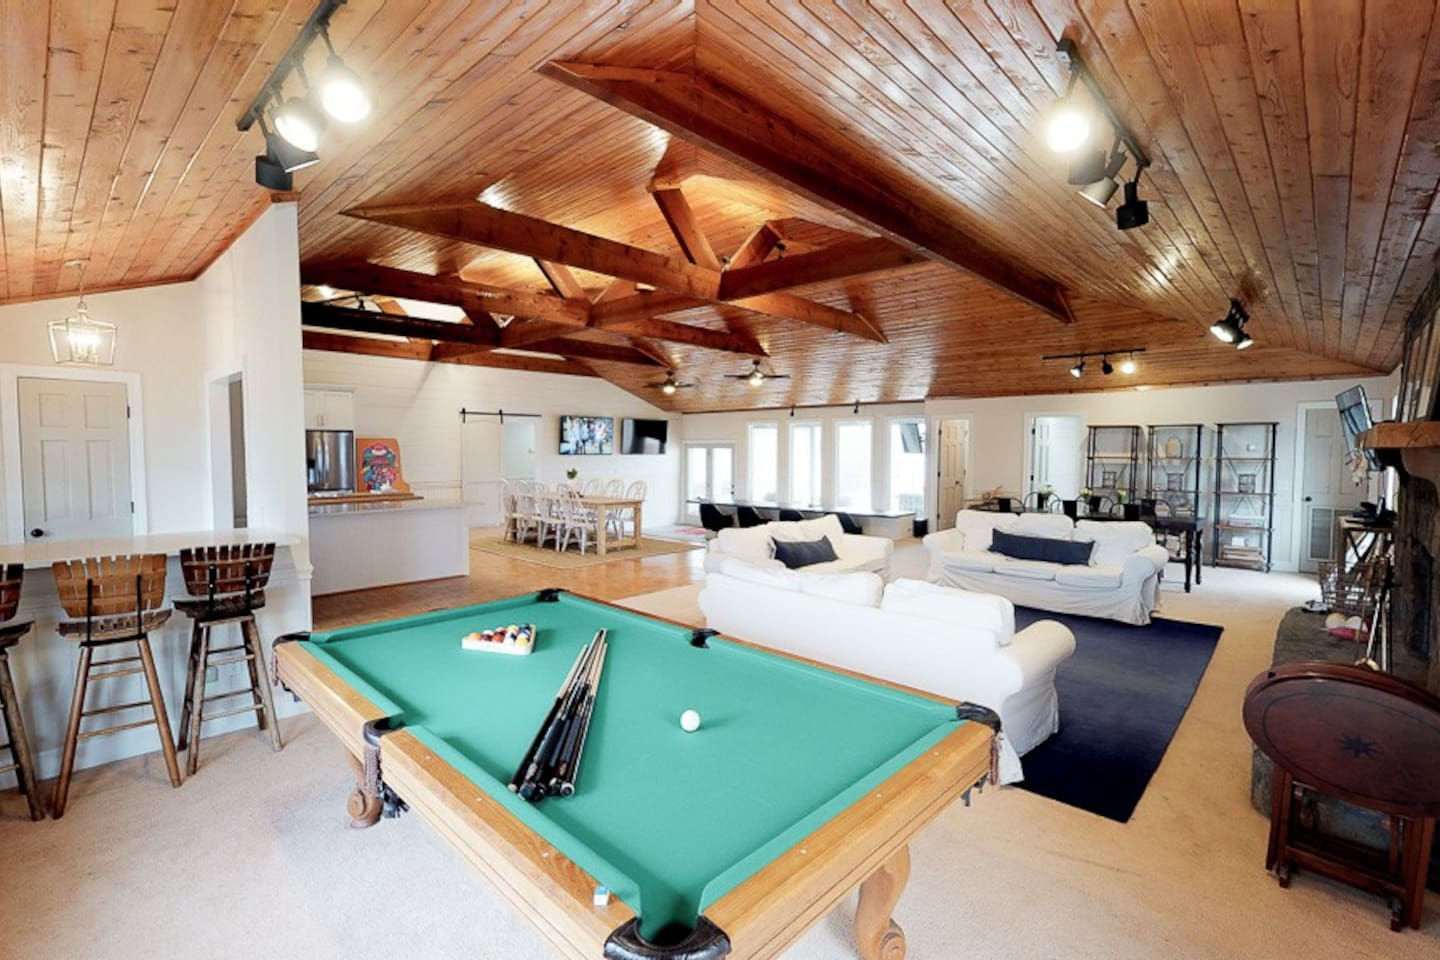 pool table in spacious living area